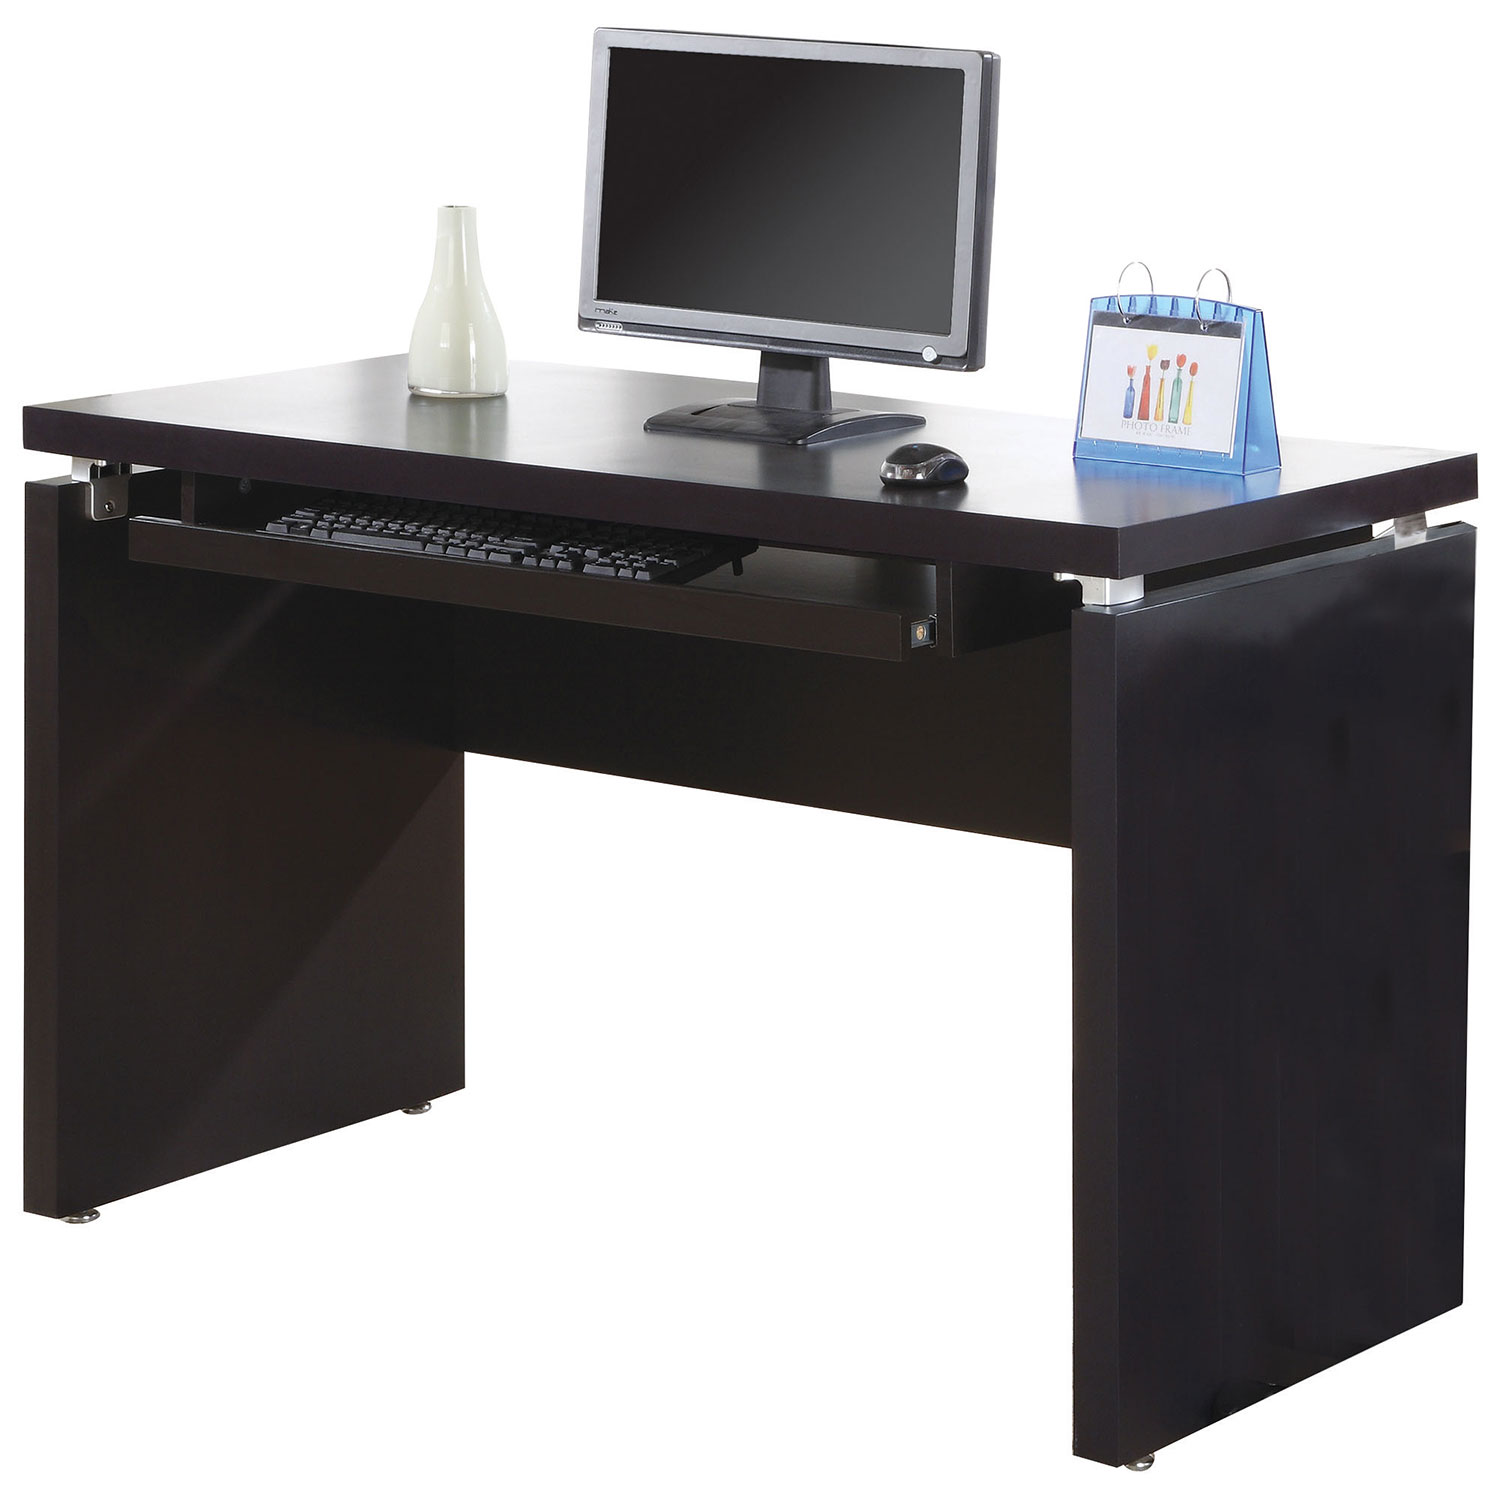 computer like with i gallery imgur on built in looks that a traditional table desk thzle album